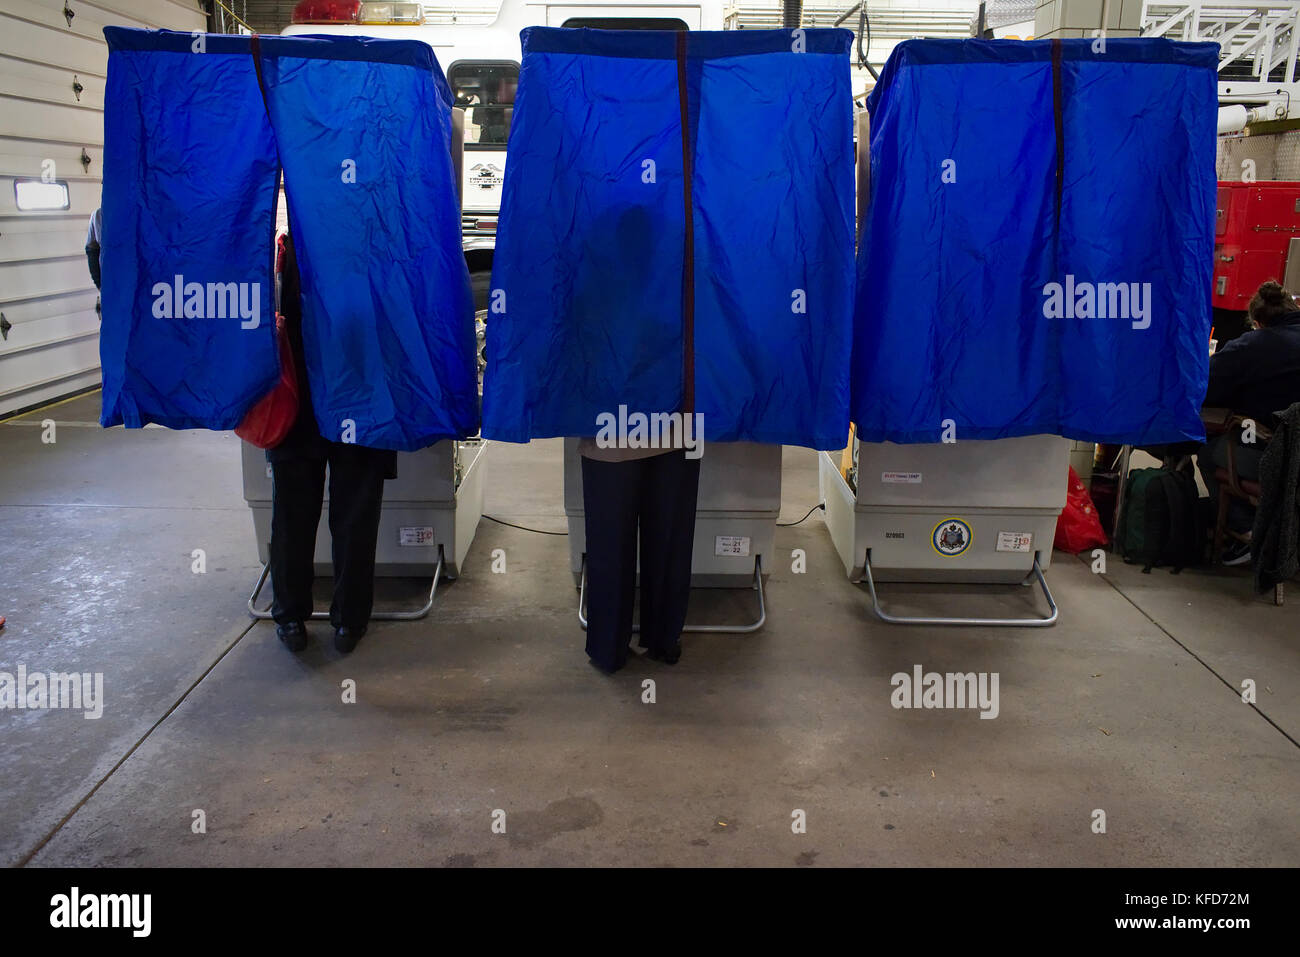 On Election Day, American citizens use electronic voting machines to cast the ballot at a polling station located - Stock Image